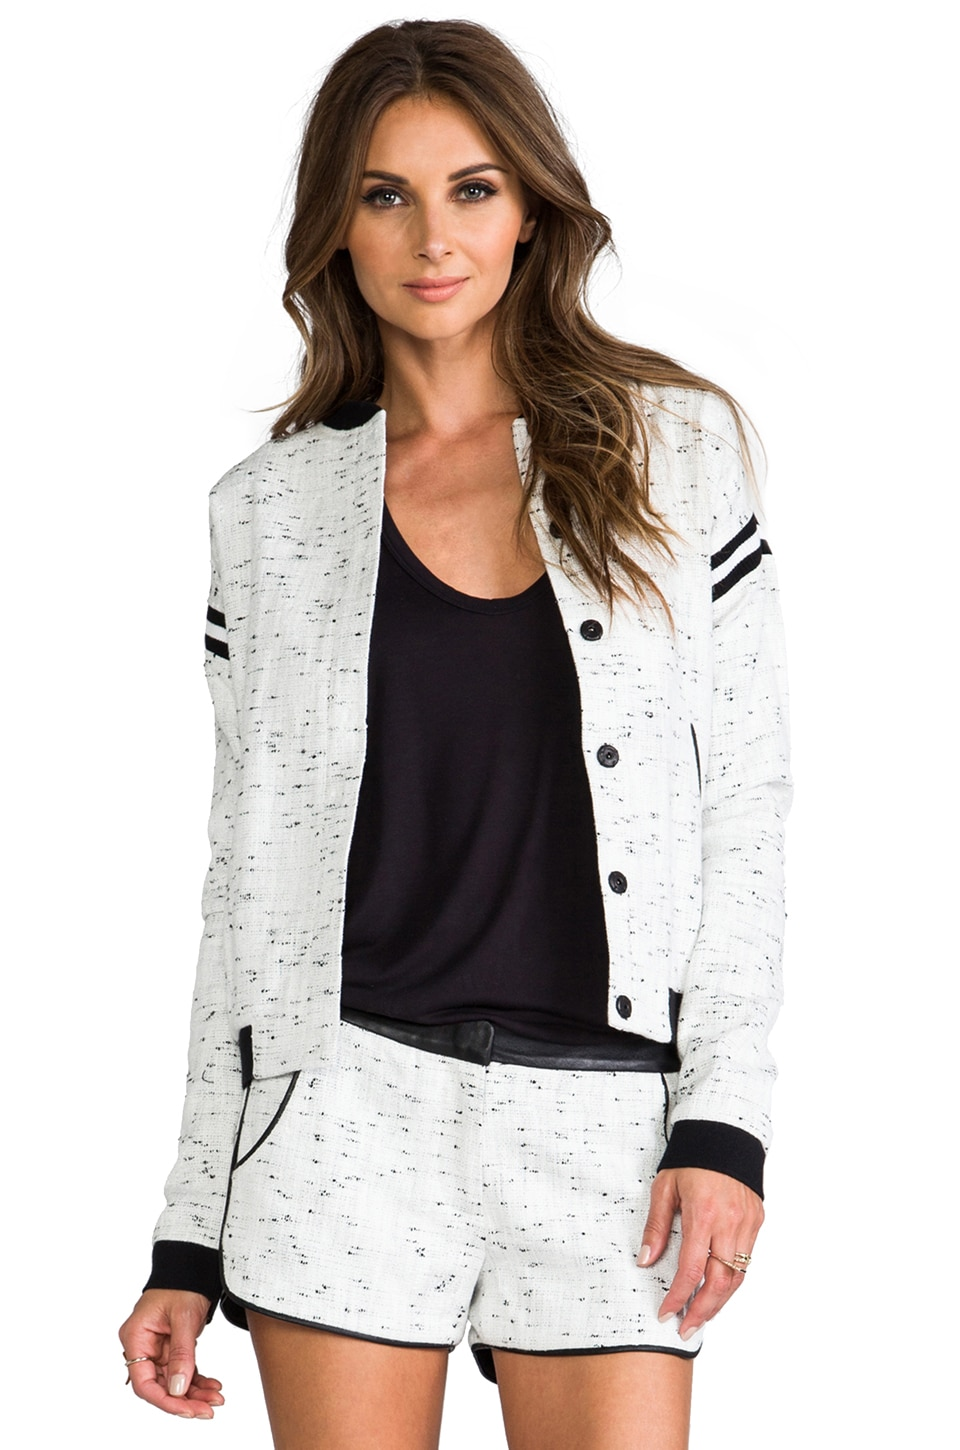 Dolce Vita Rella Jacket in Black/White